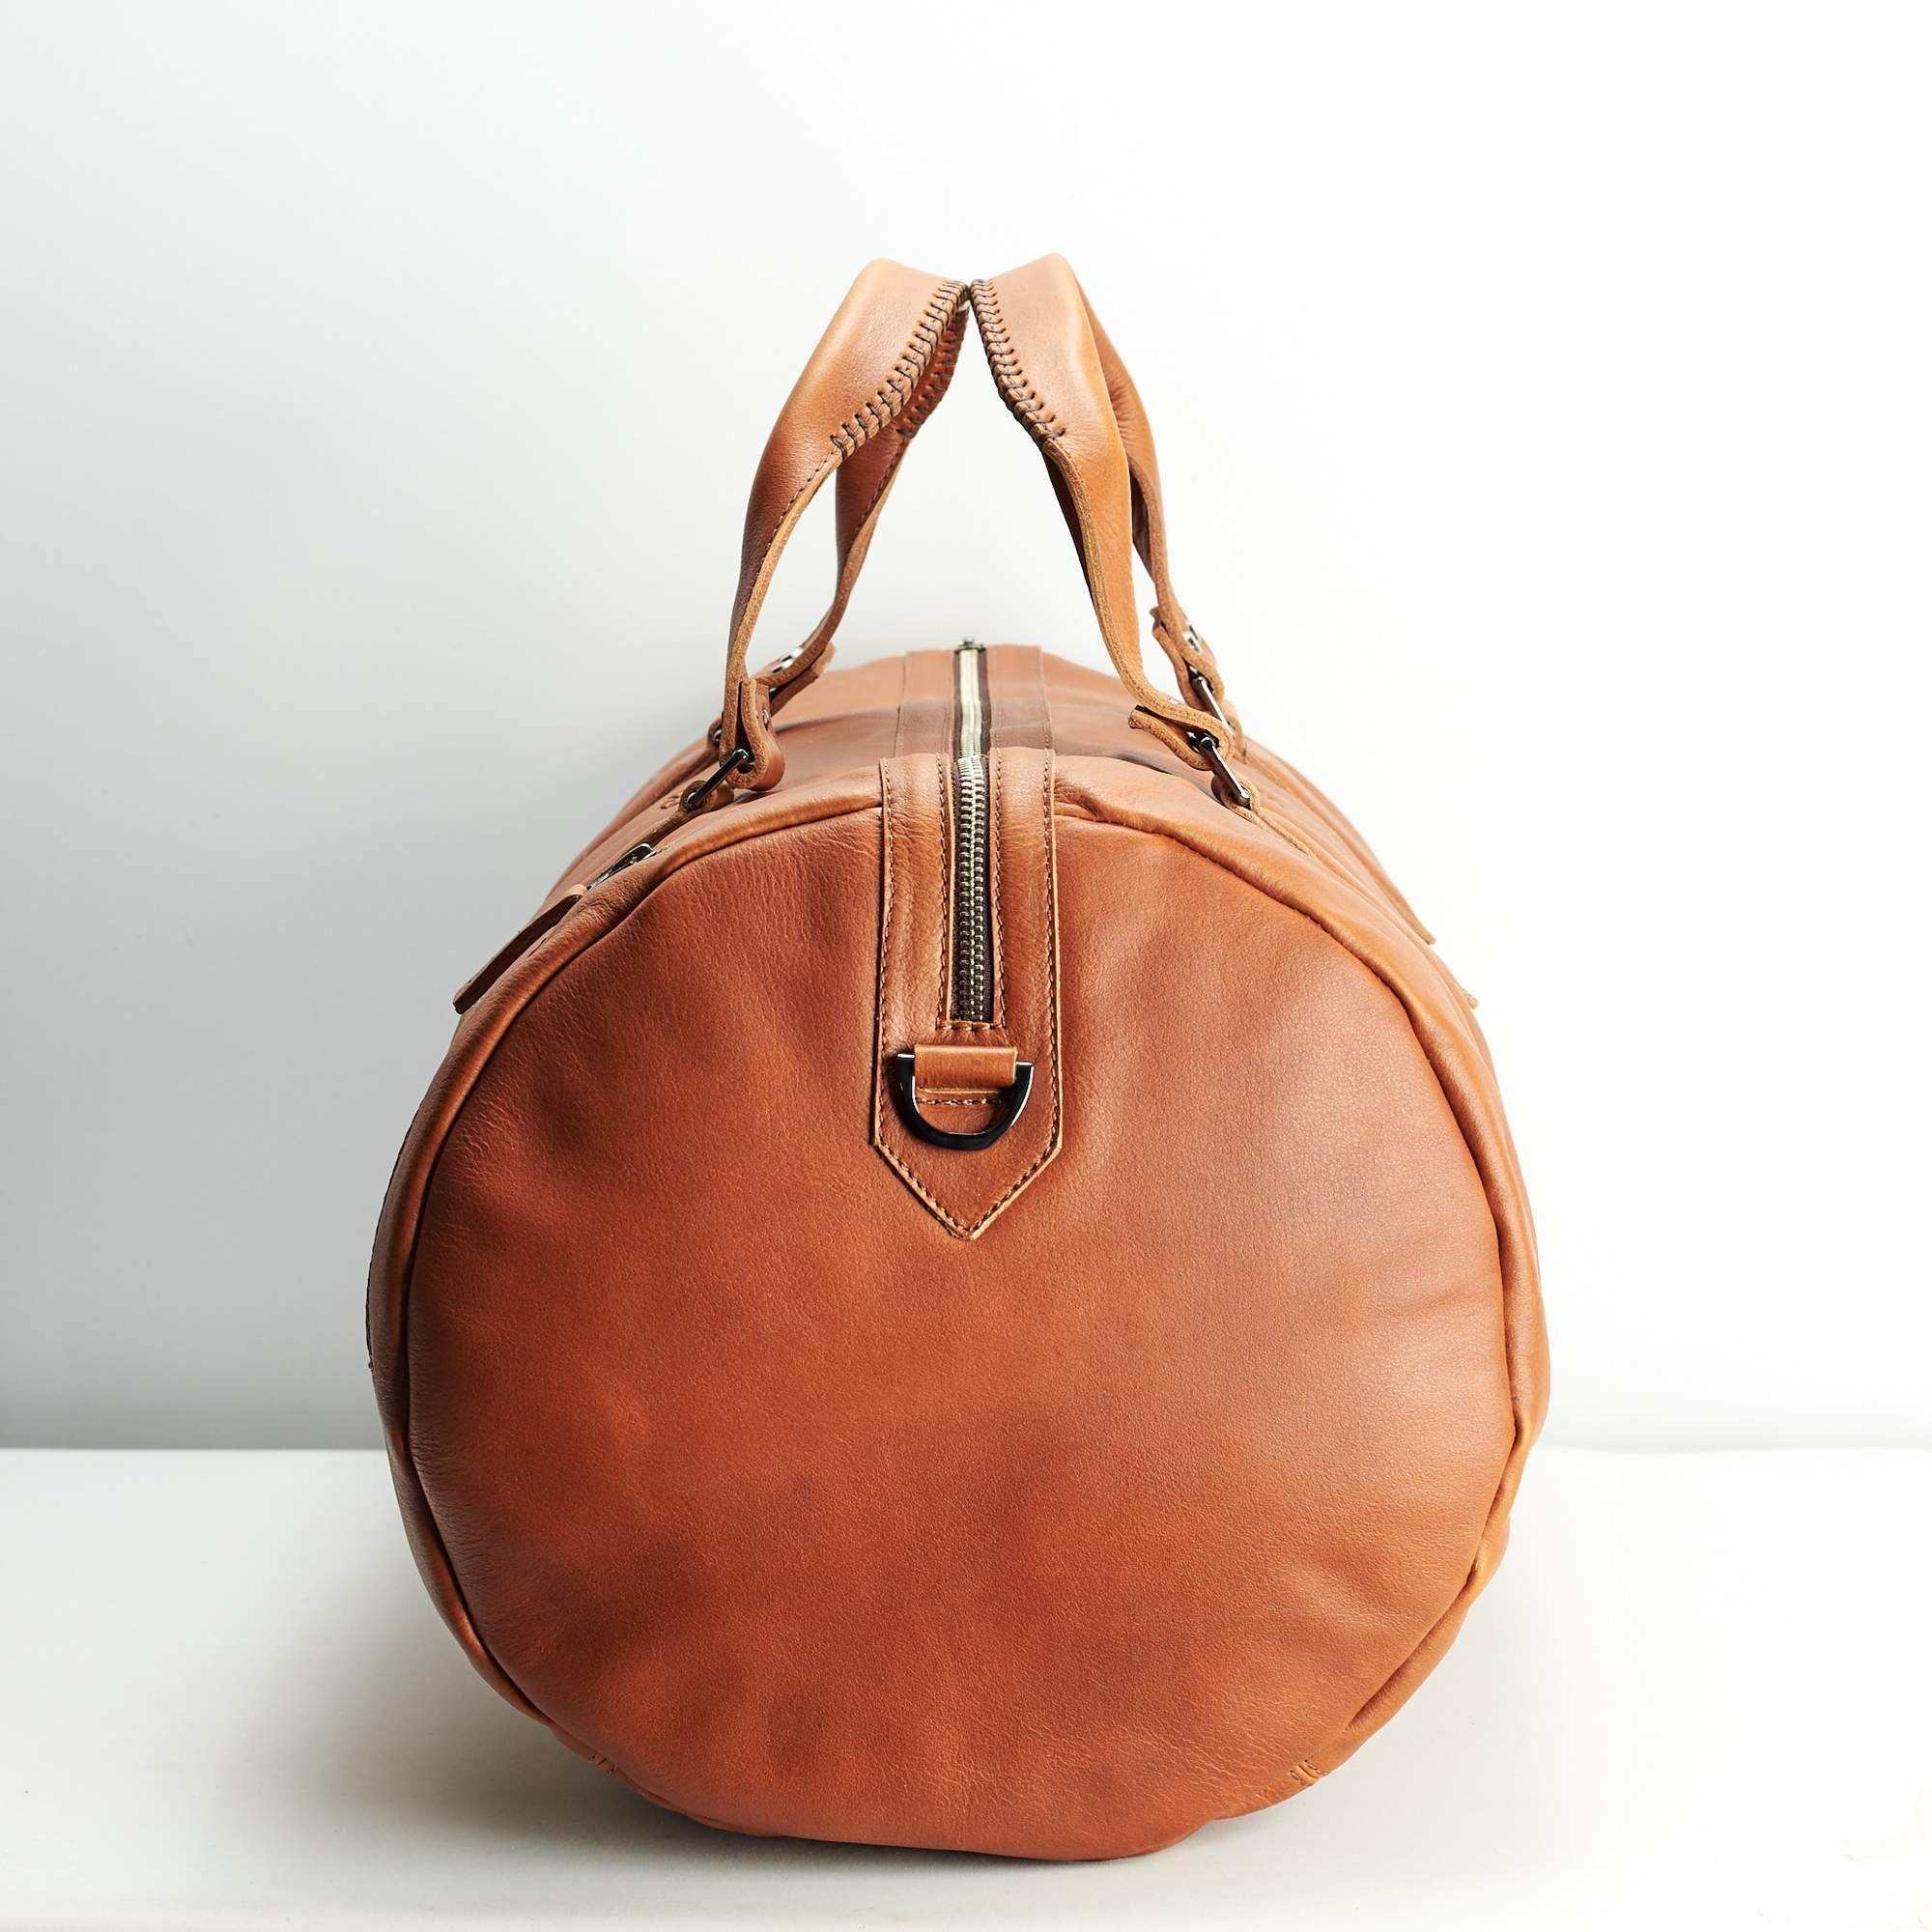 Substantial Leather Duffle Bag · Tan by Capra Leather 6acd9148f5502